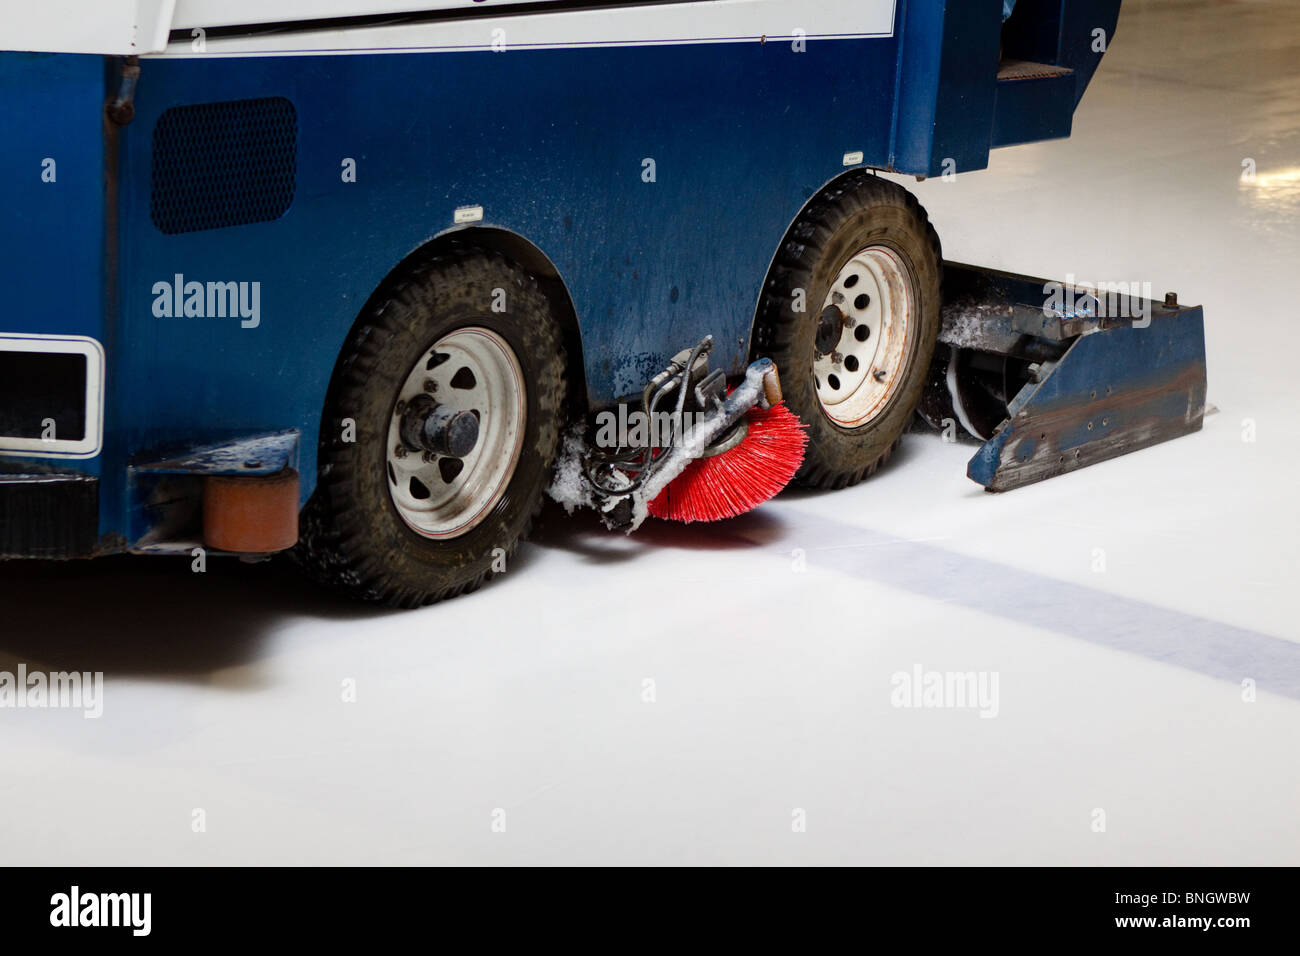 Zamboni Ice Cleaning machine working in hockey arena with ad space - Stock Image